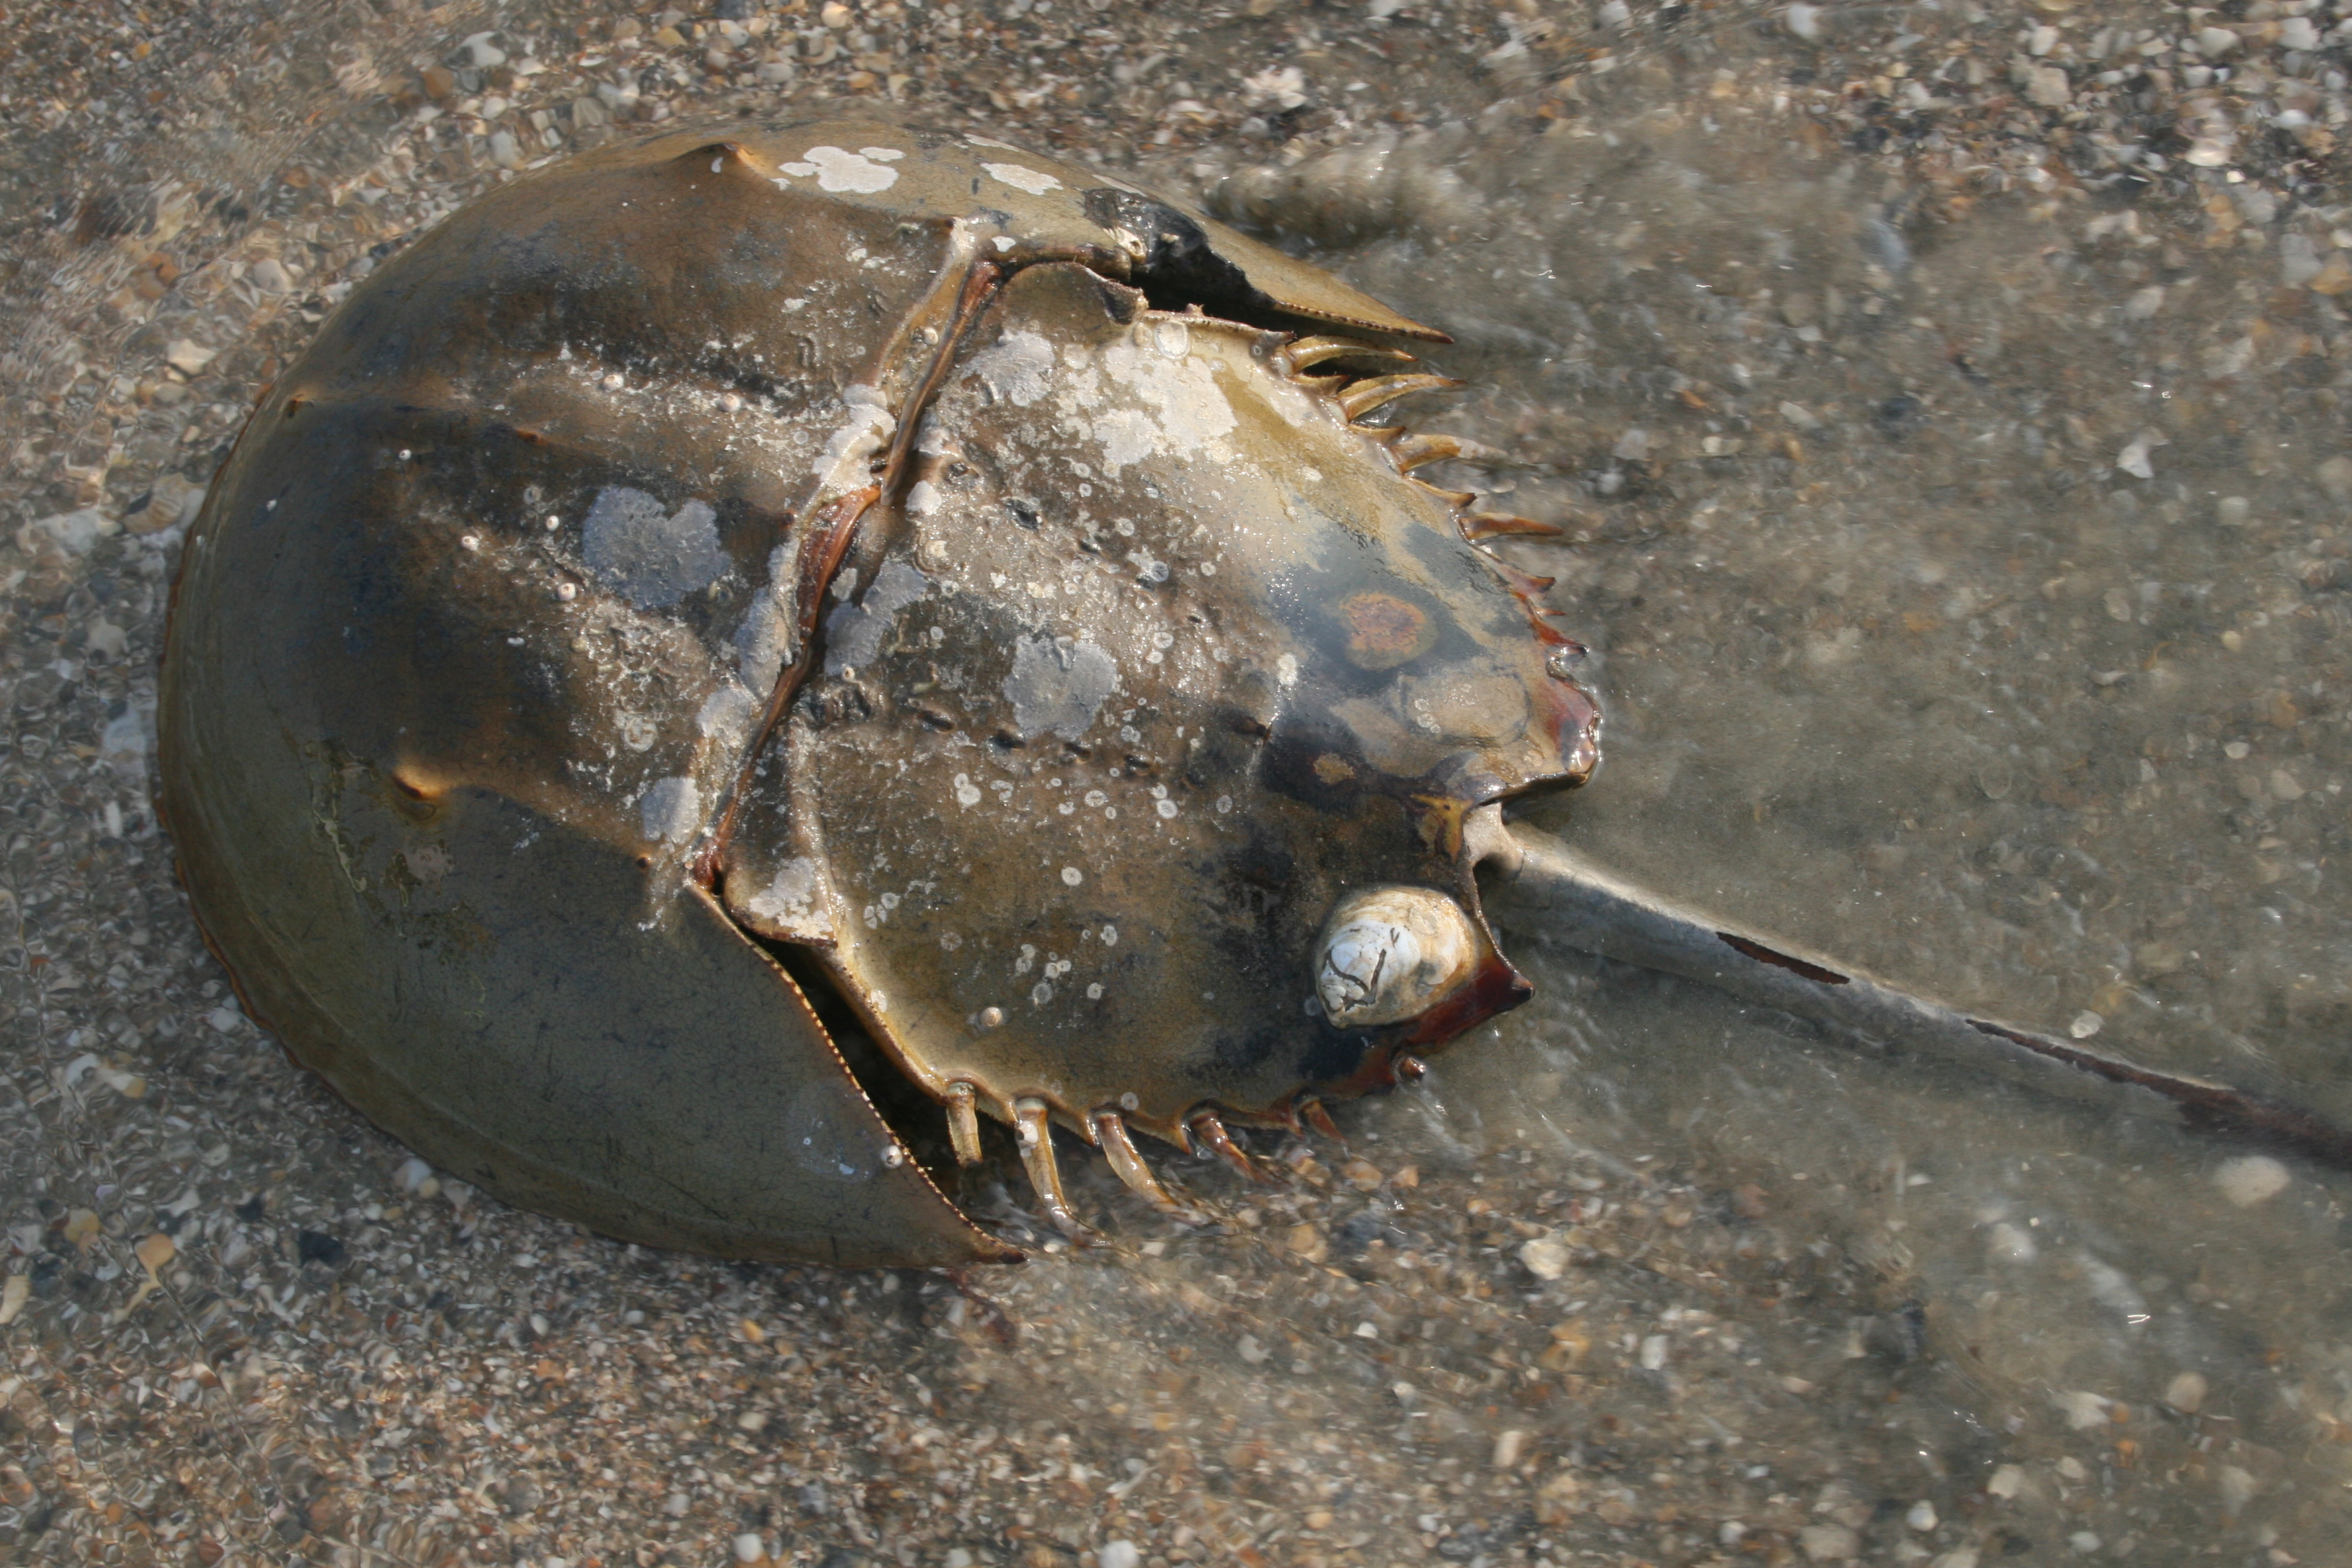 Horseshoe crabs provide slow moving real estate for other organisms, like this slipper limpet.